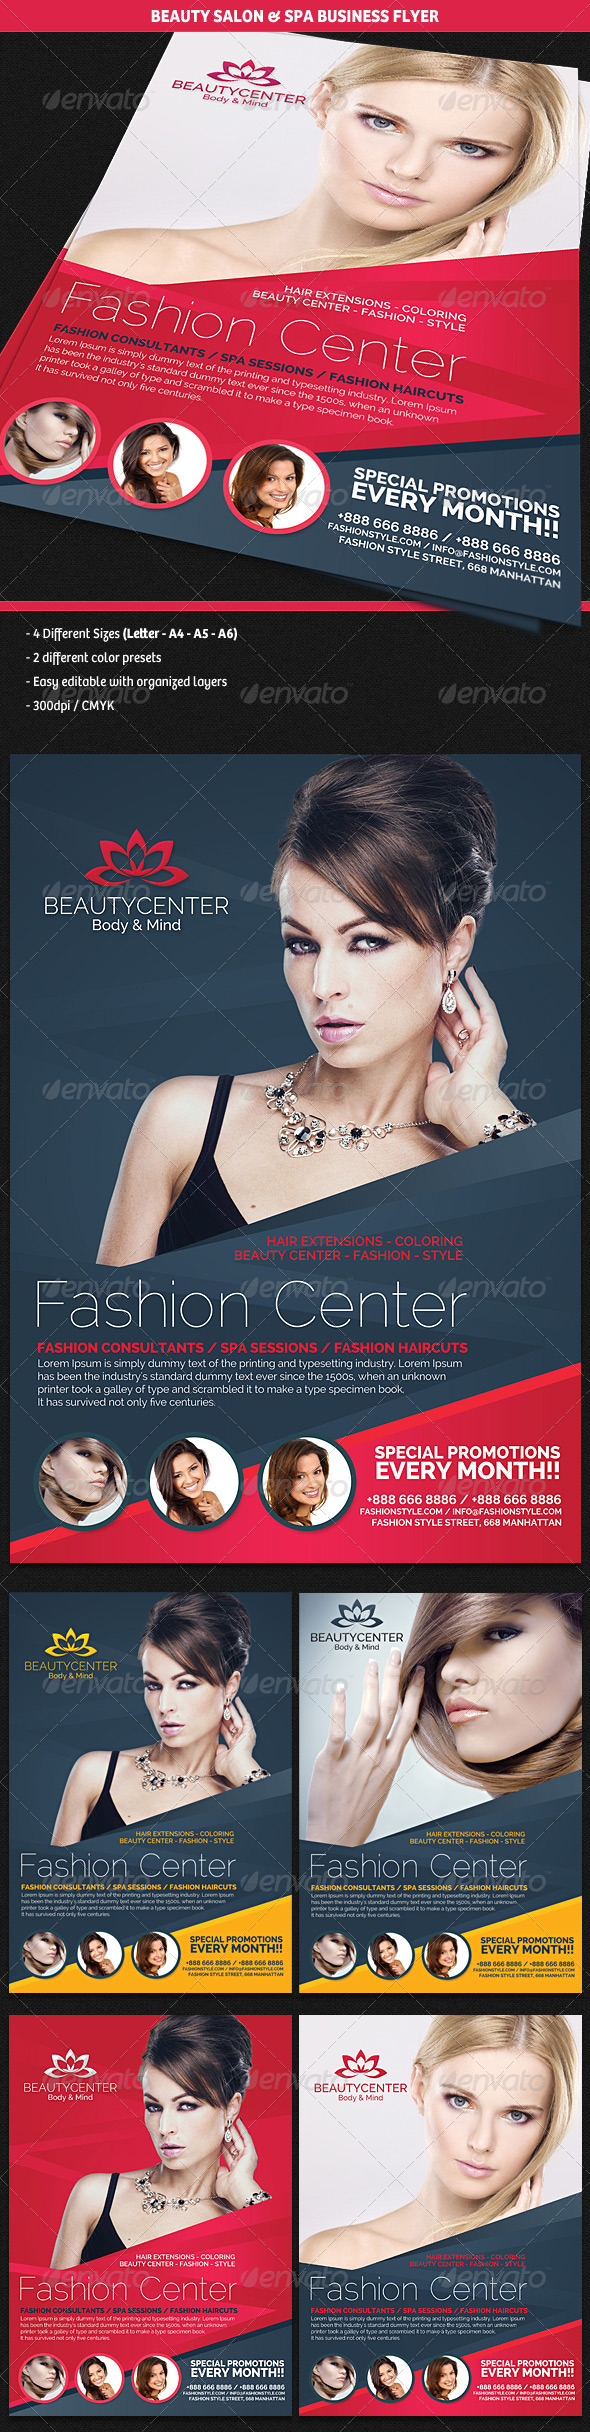 GraphicRiver Beauty Center & Spa Business Flyer 4661292